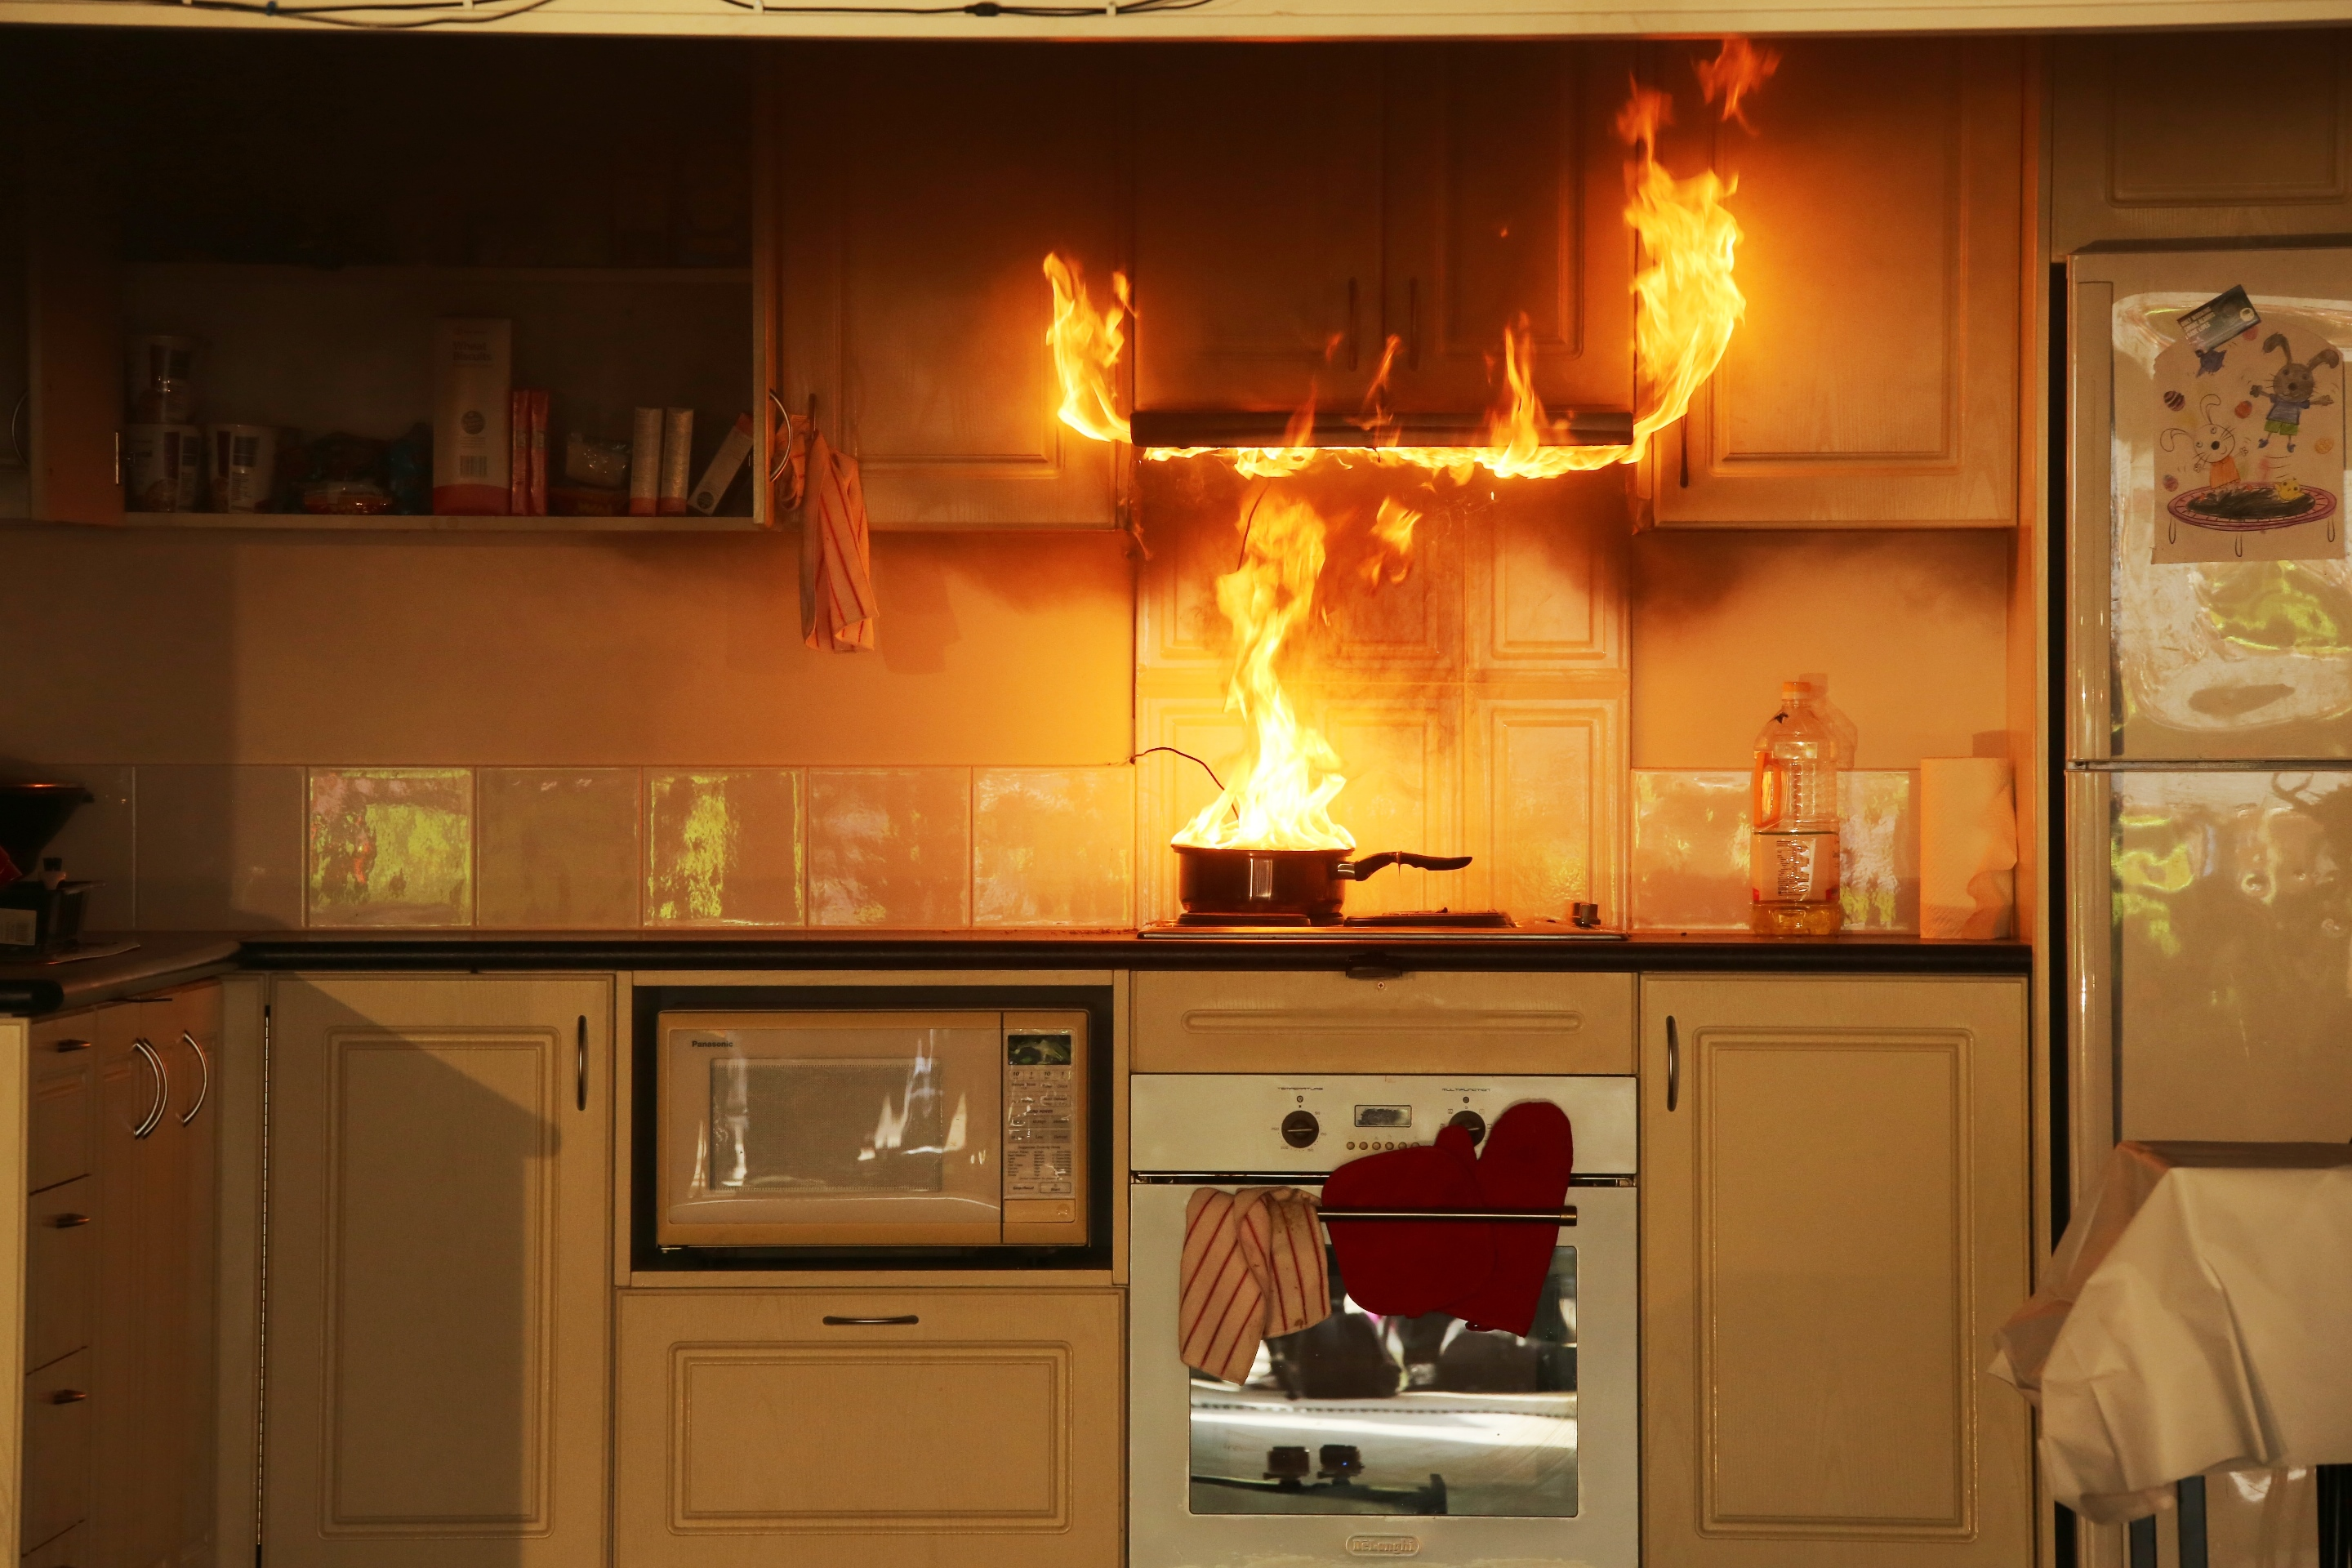 How To Prevent Home Kitchen Fire